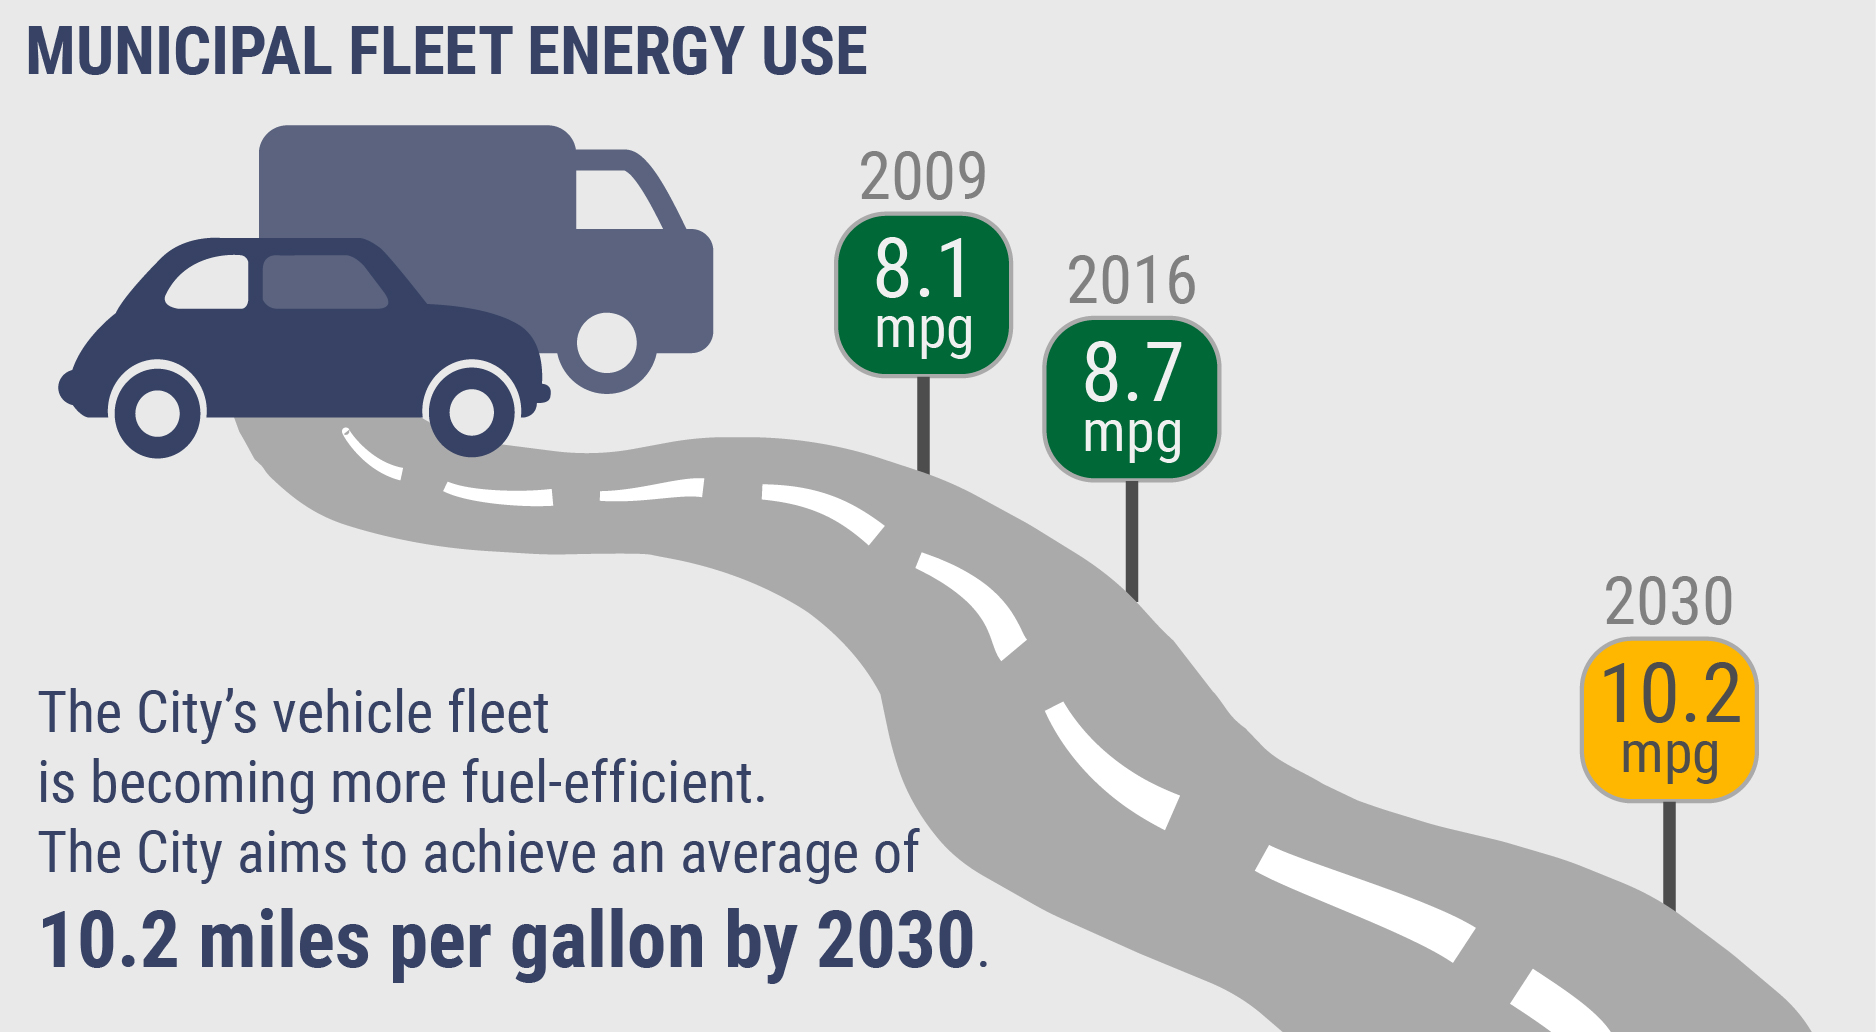 Infographic showing the City's vehicle fleet achieving an average of 10.2 mpg by 2030.